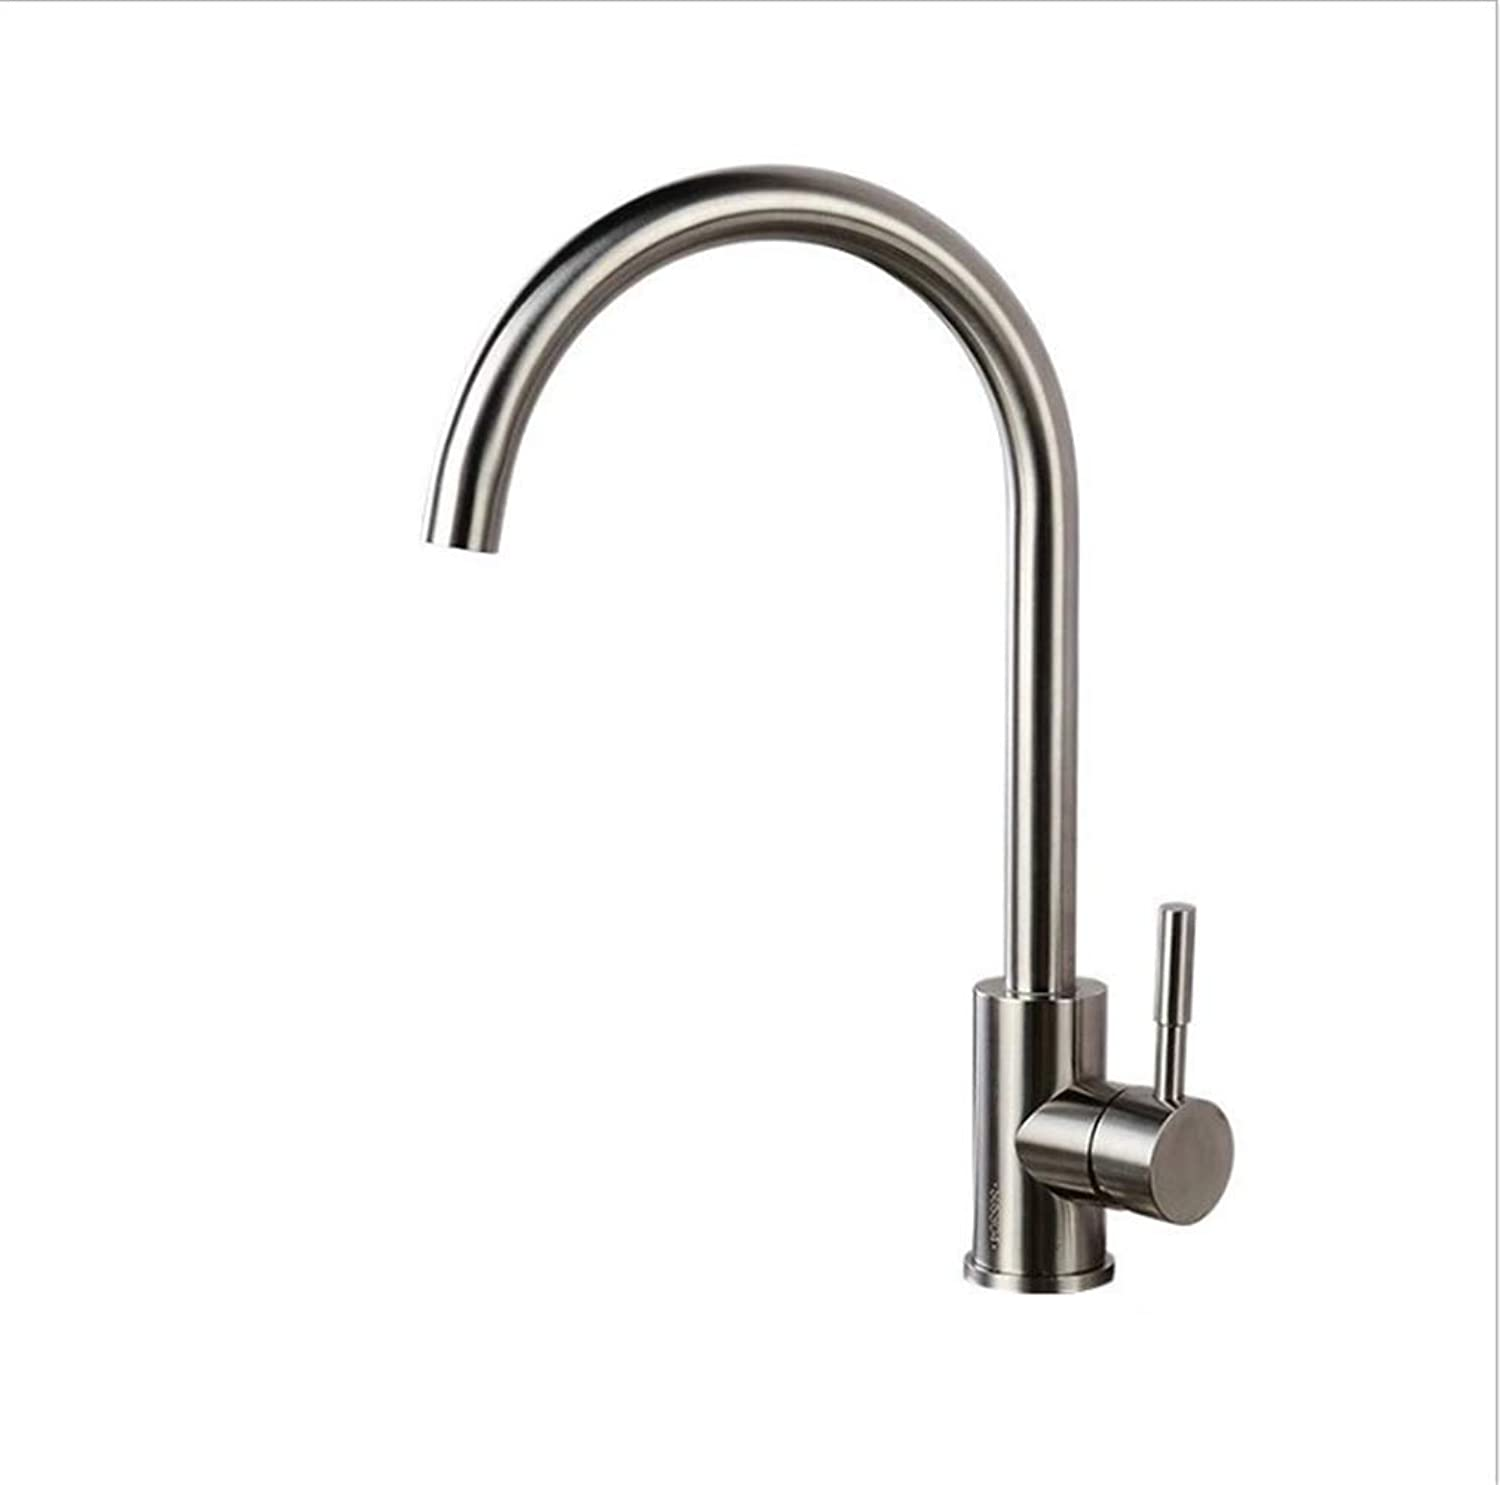 Kitchen Taps Faucet Modern Kitchen Sink Taps Stainless Steelstainless Steel Kitchen Cold and Hot Water Faucet Sink Dish Basin Faucet Mixing Valve redary Faucet